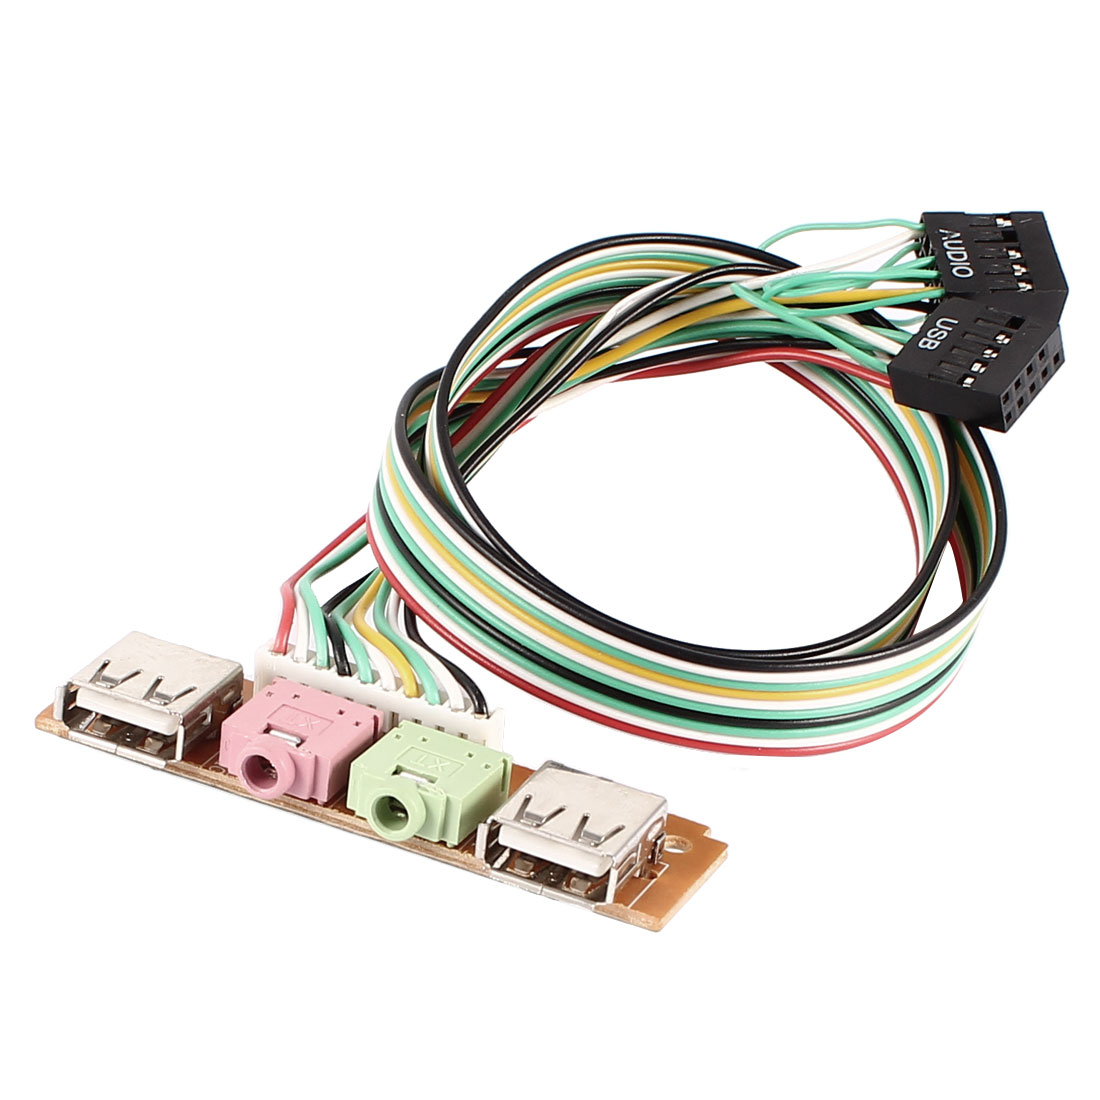 Dual USB 2.0 Female 3.5mm Audio to 2 x Motherboard 9 Pin Header Cable 50cm